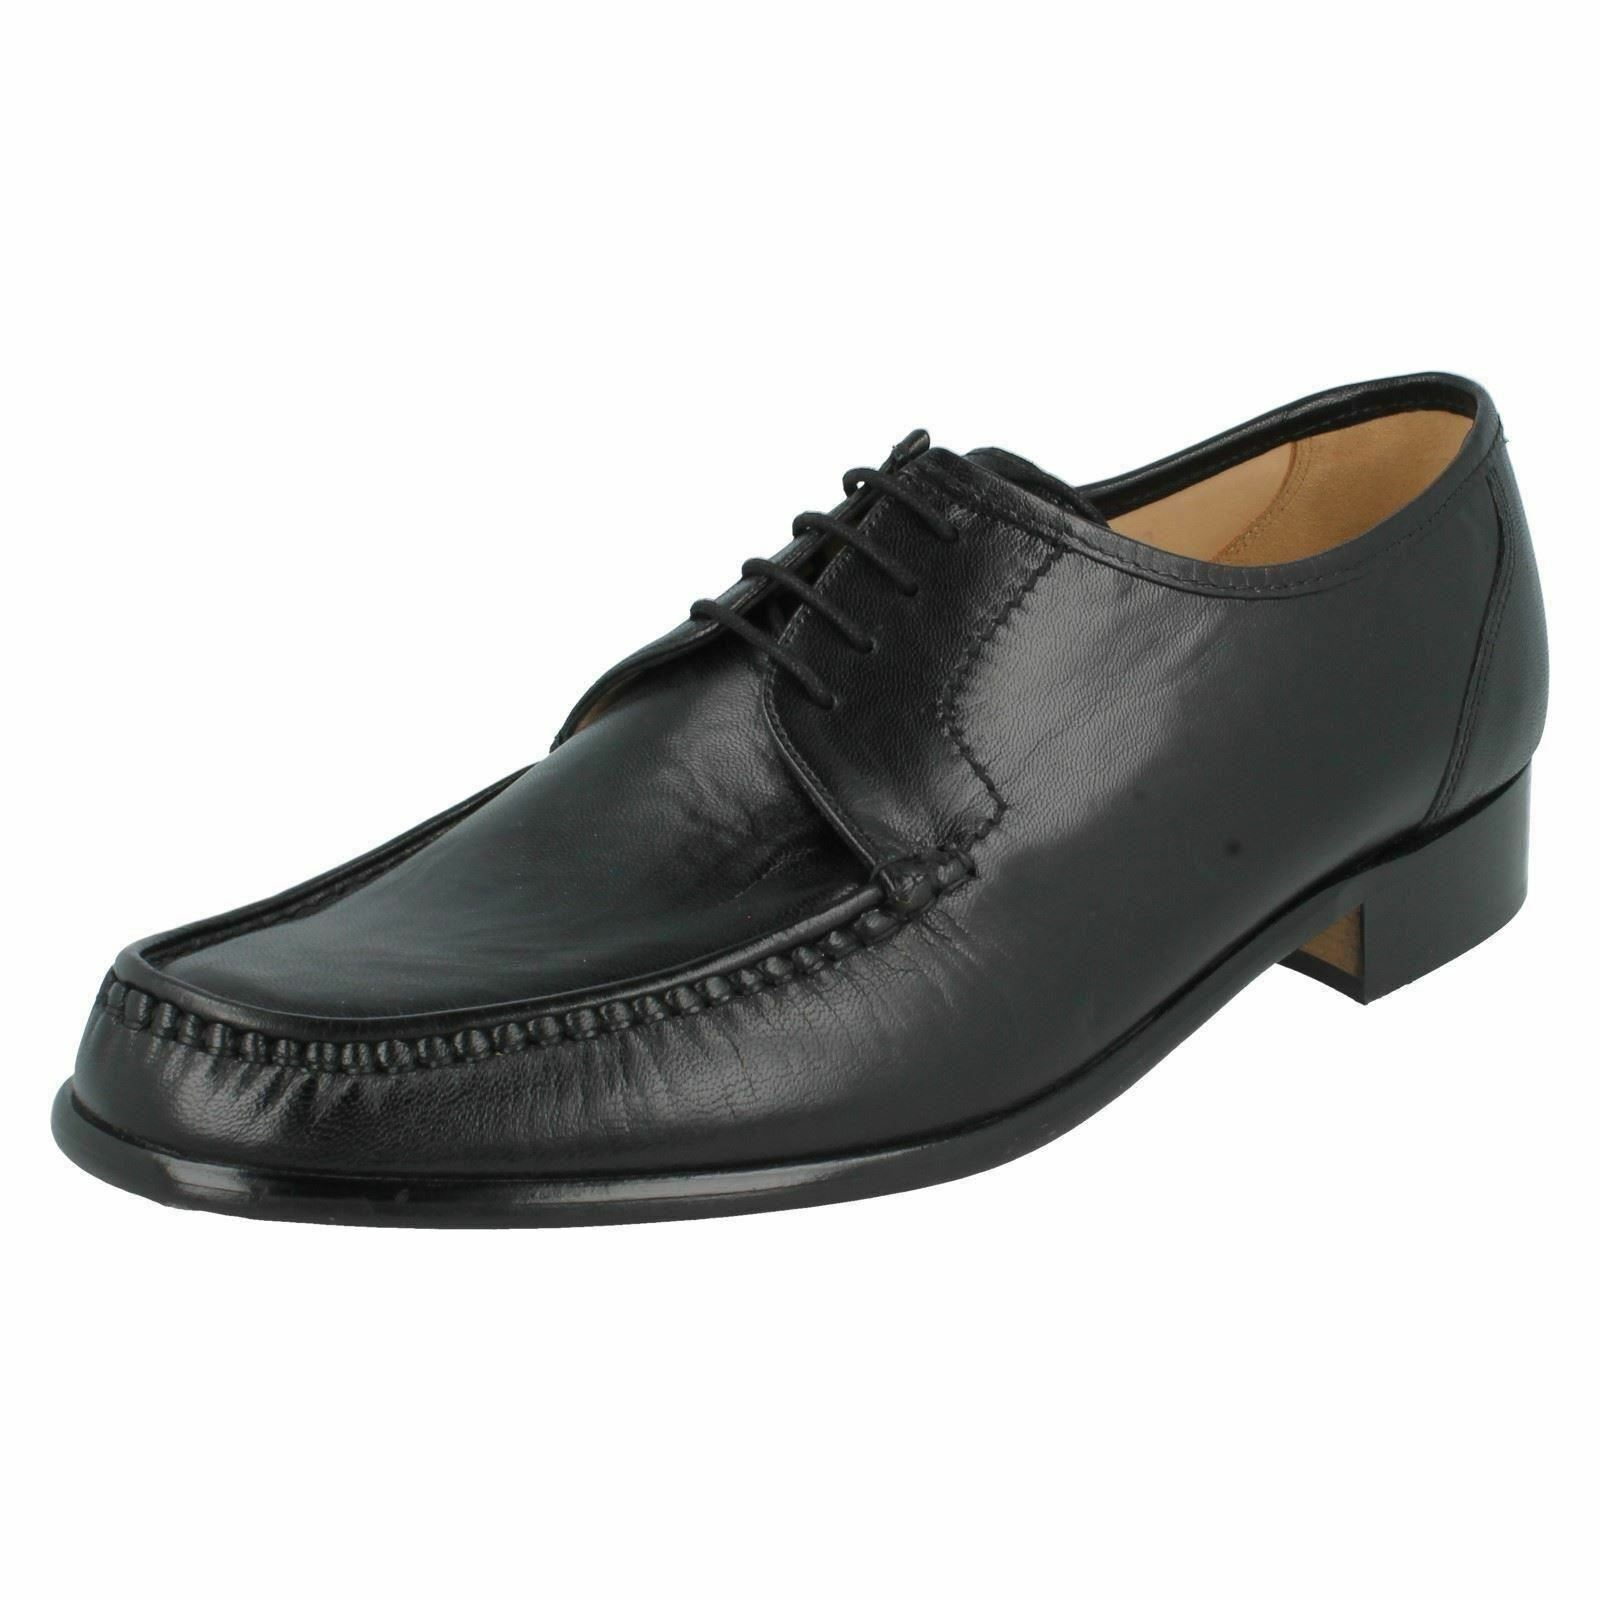 Hombre GRENSON Negro LEATHER STYLE- LACE UP Zapatos (33343) STYLE- LEATHER CREWE 4d0b52